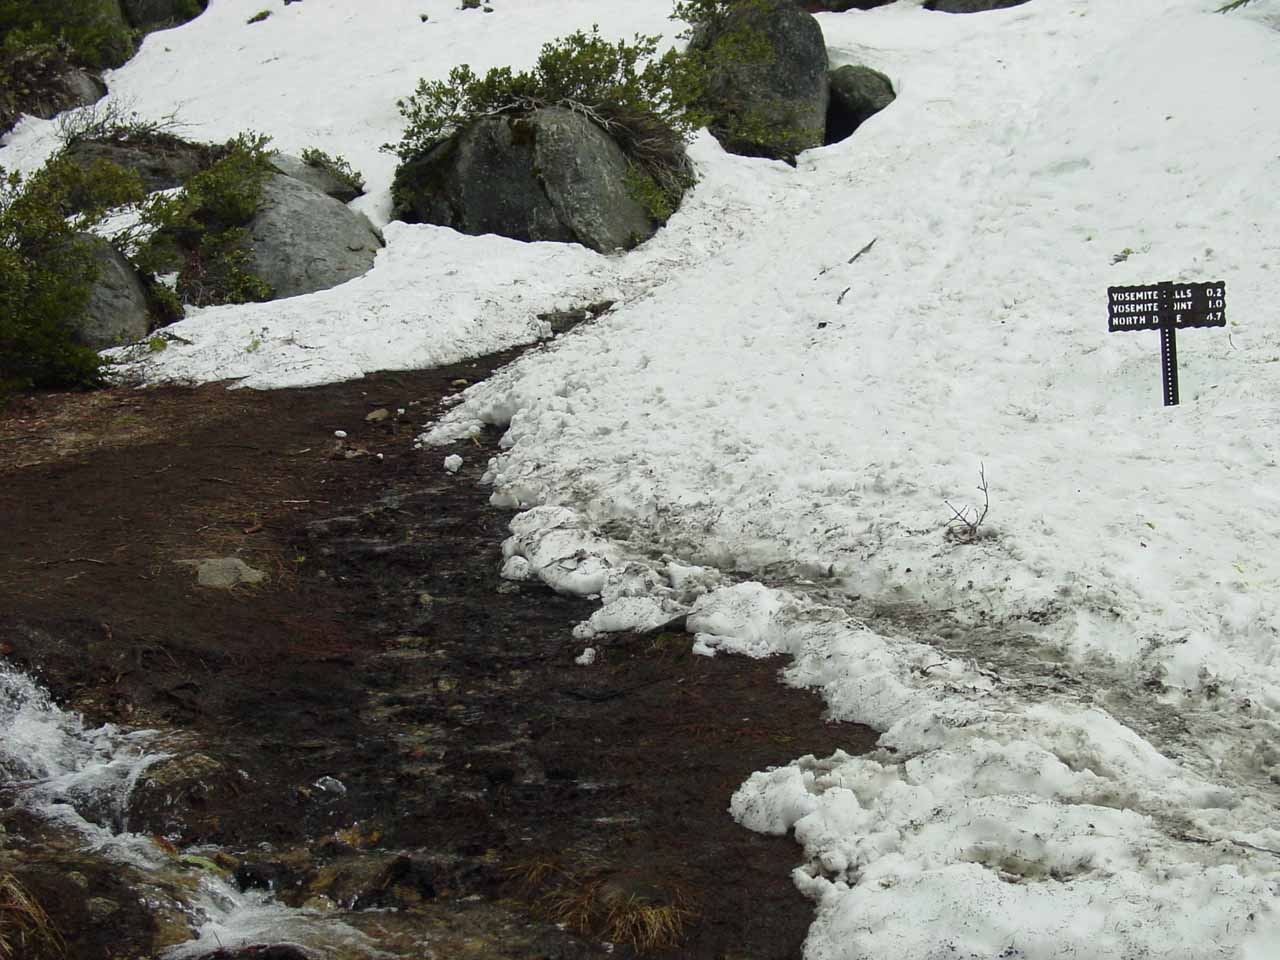 There was still snow on the Upper Yosemite Falls Trail in the high country in April 2005